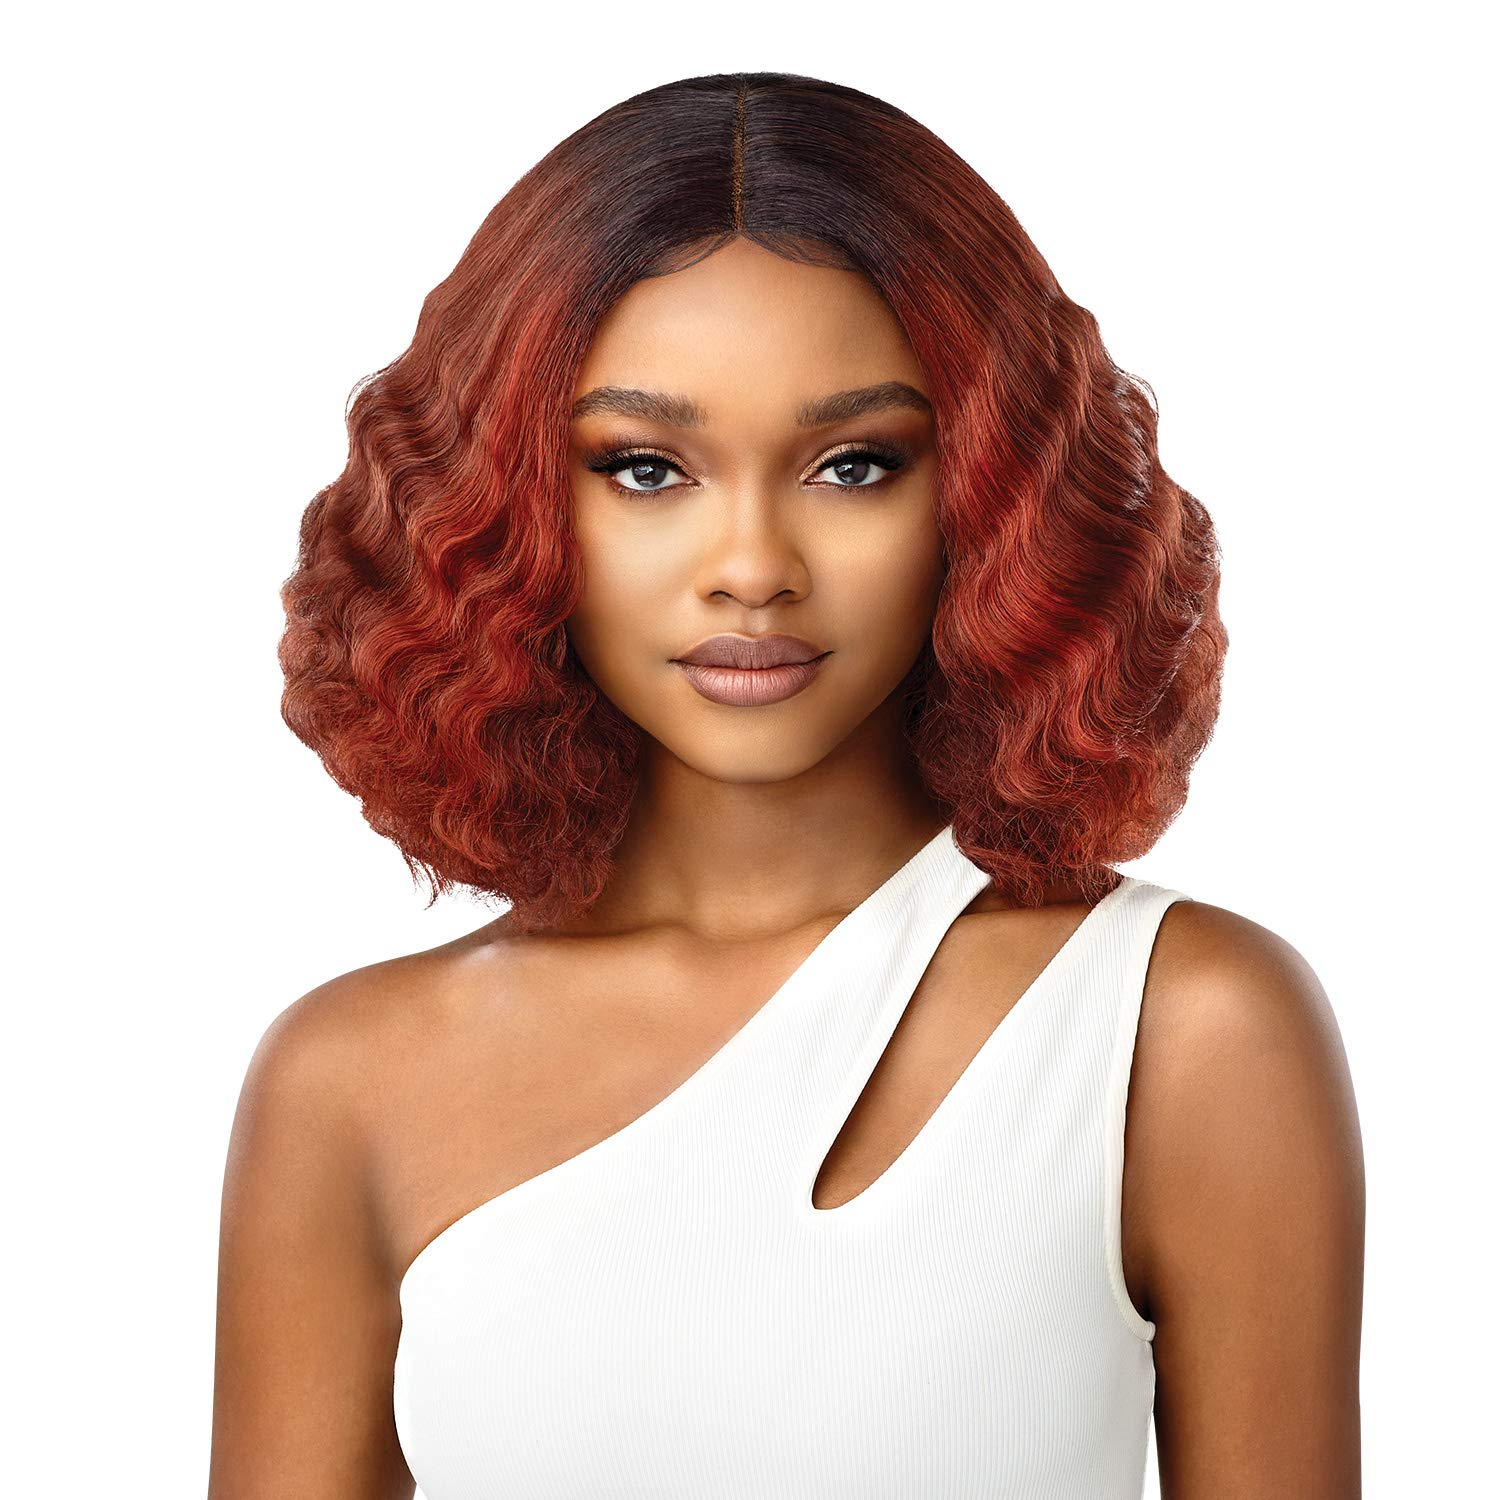 Outre Synthetic Large-scale sale HD Lace Front Wig Black SOLEIL Boston Mall Jet 1 -